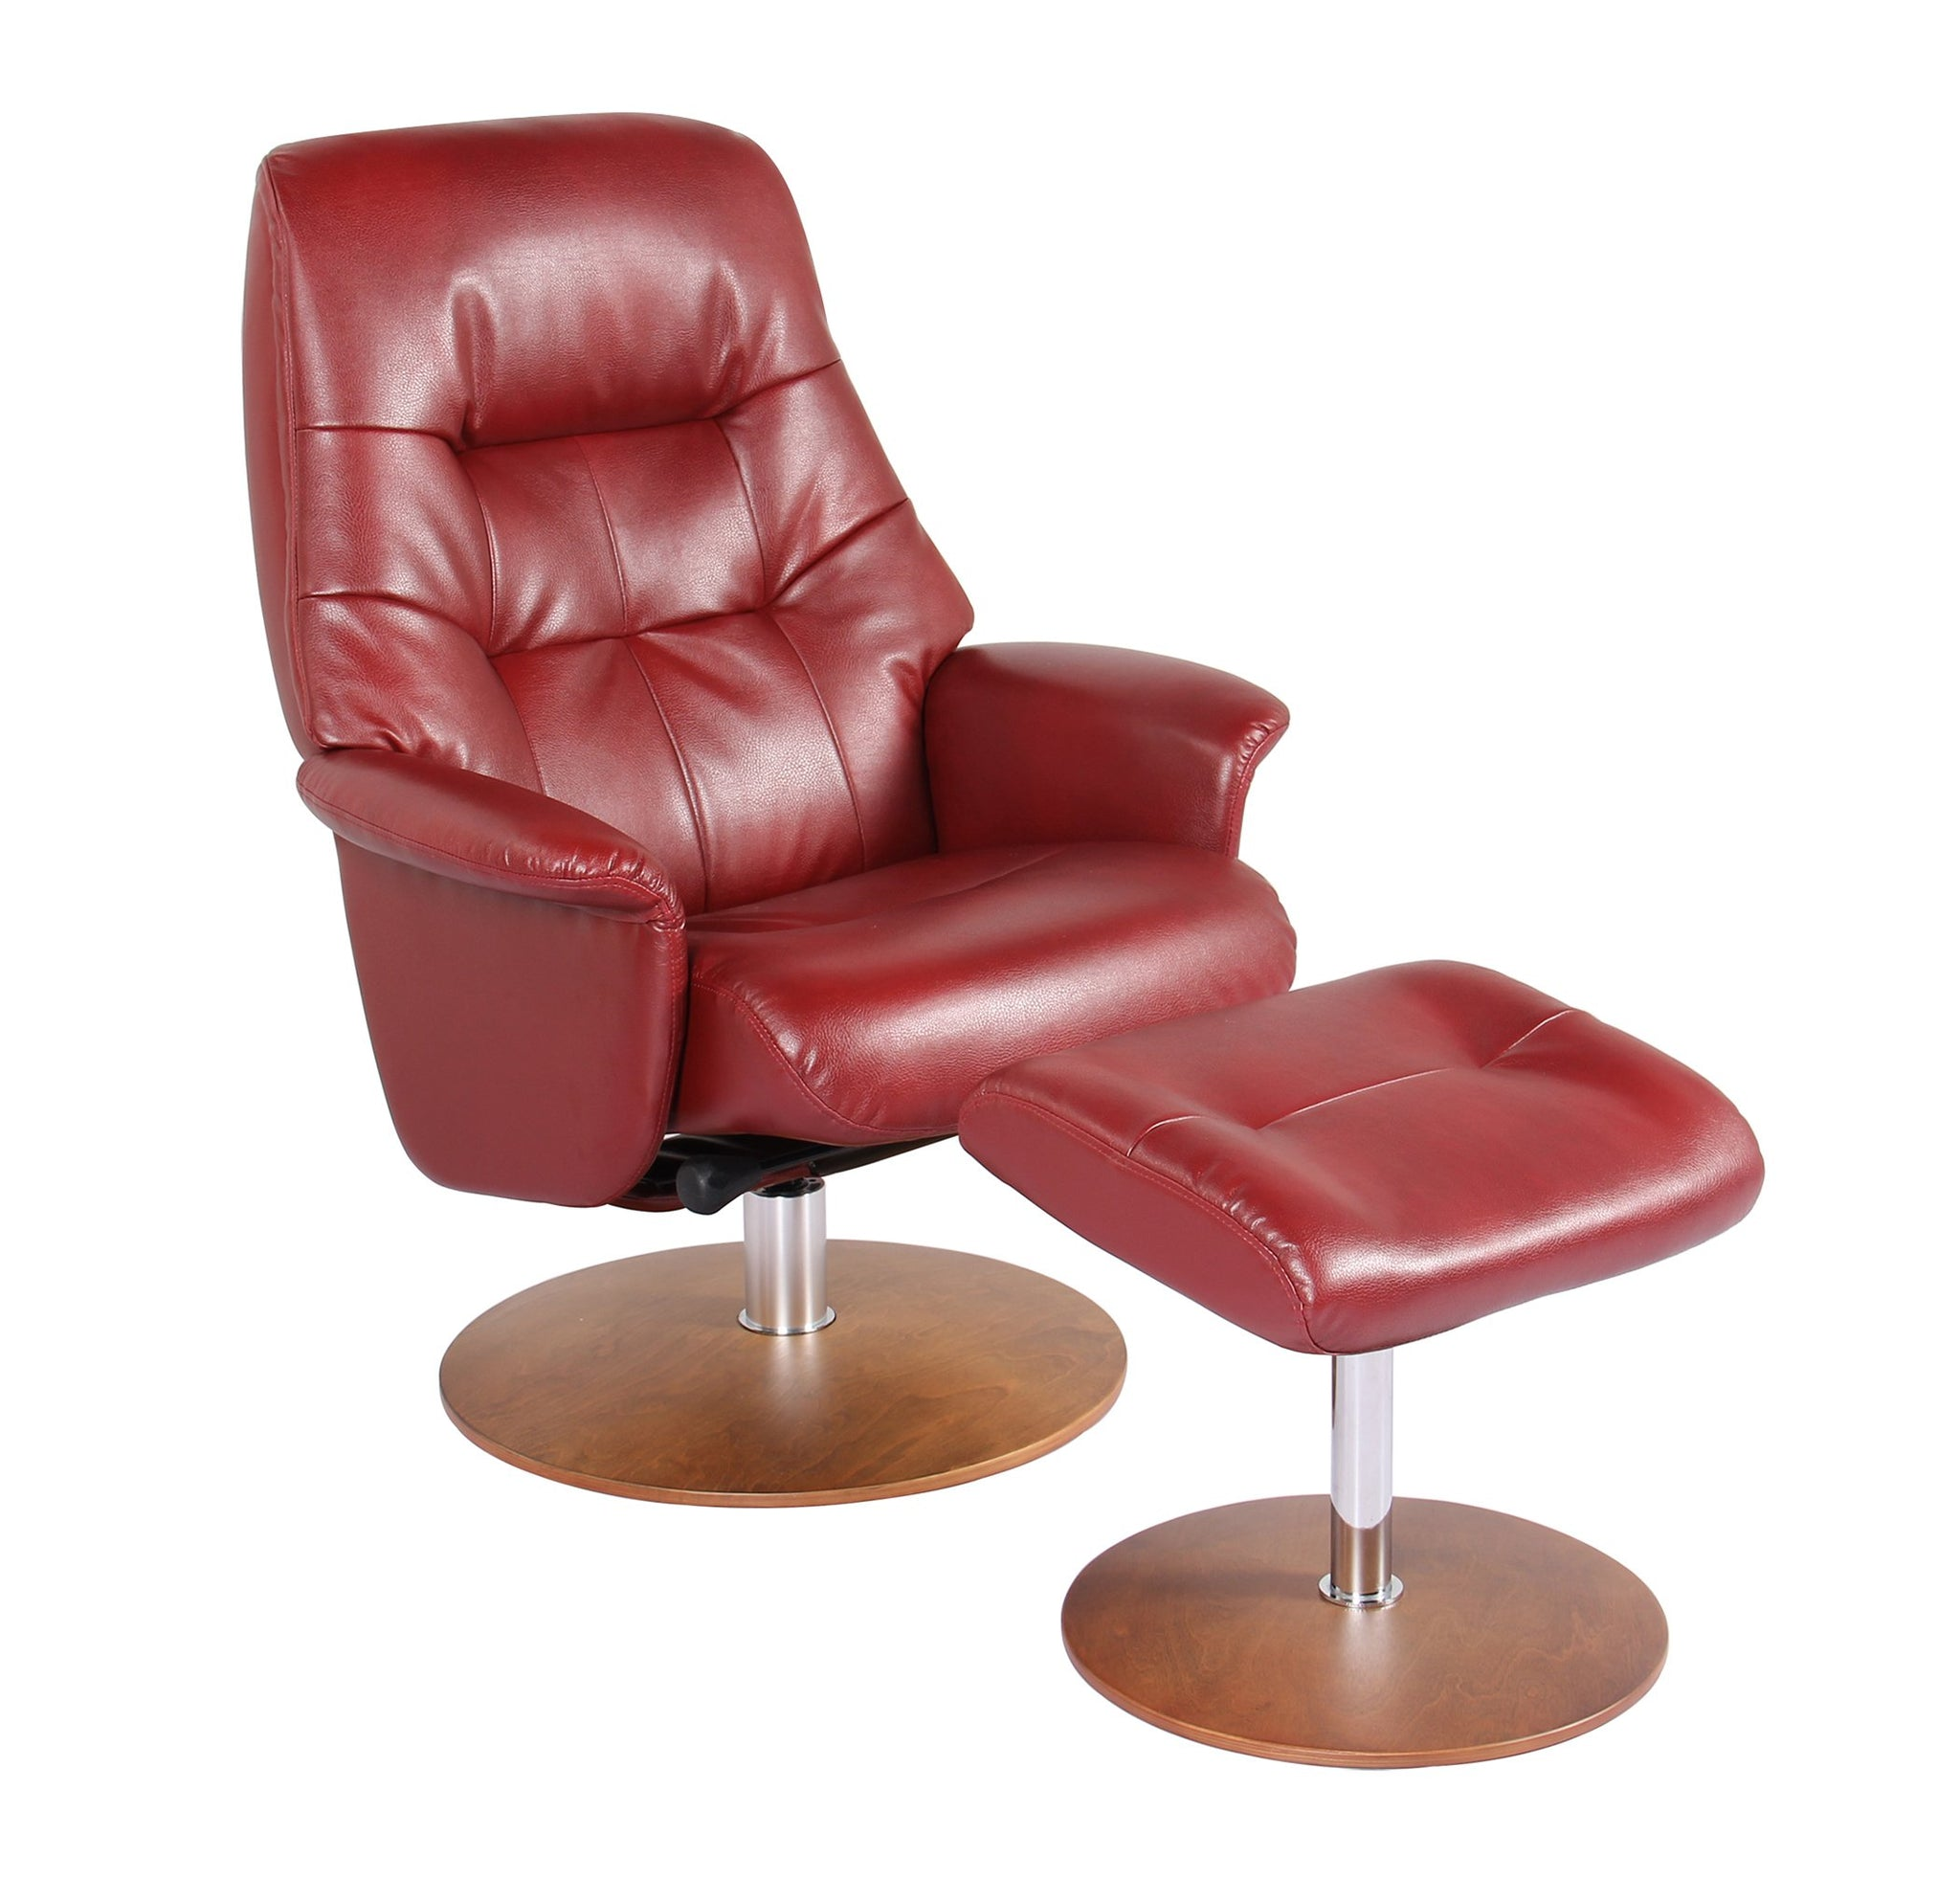 product mocha with lr home adelino ottoman cindy recliners brown image recliner rec crawford leather